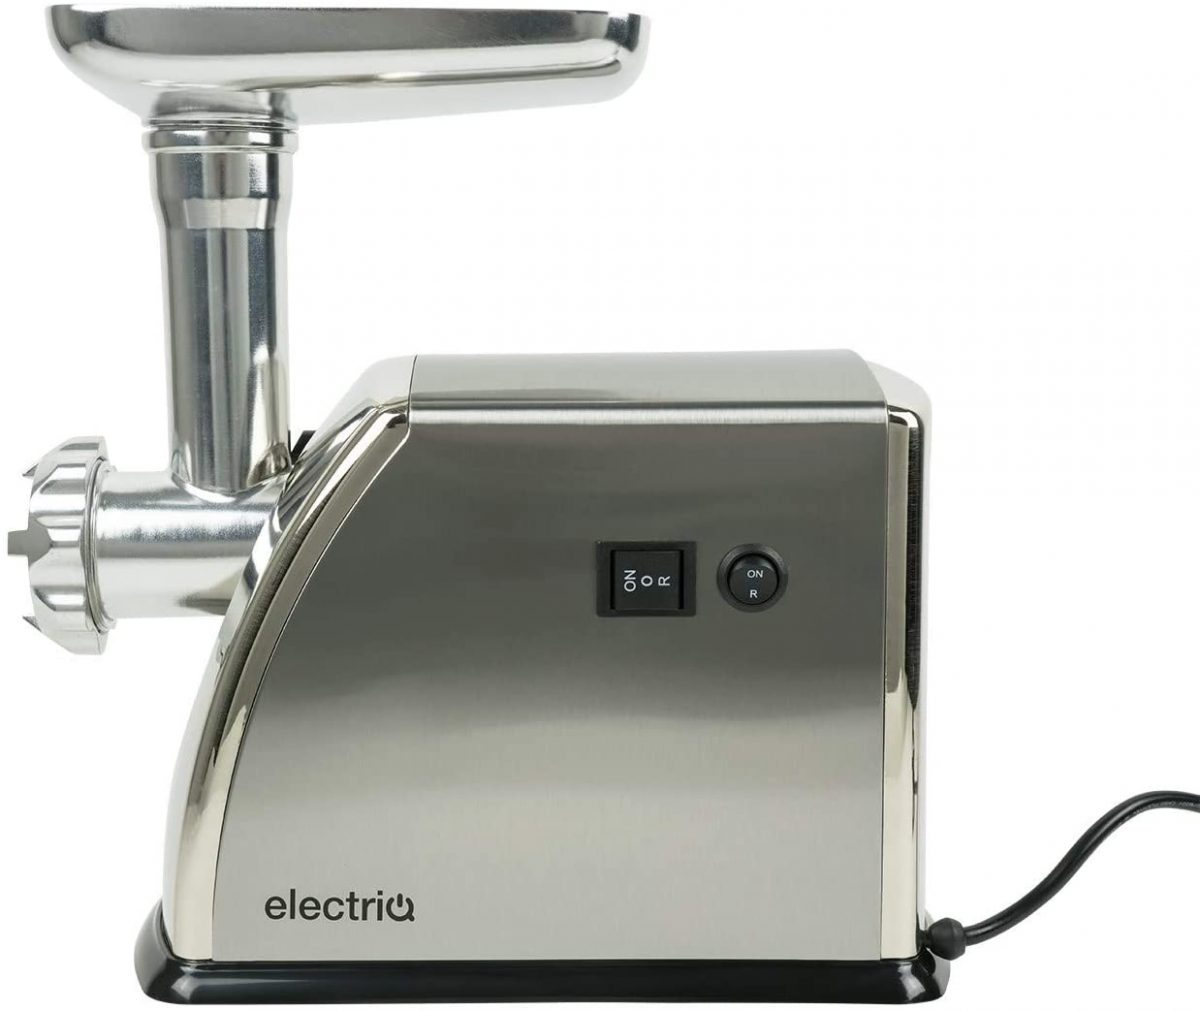 electriQ Electric Meat Grinder